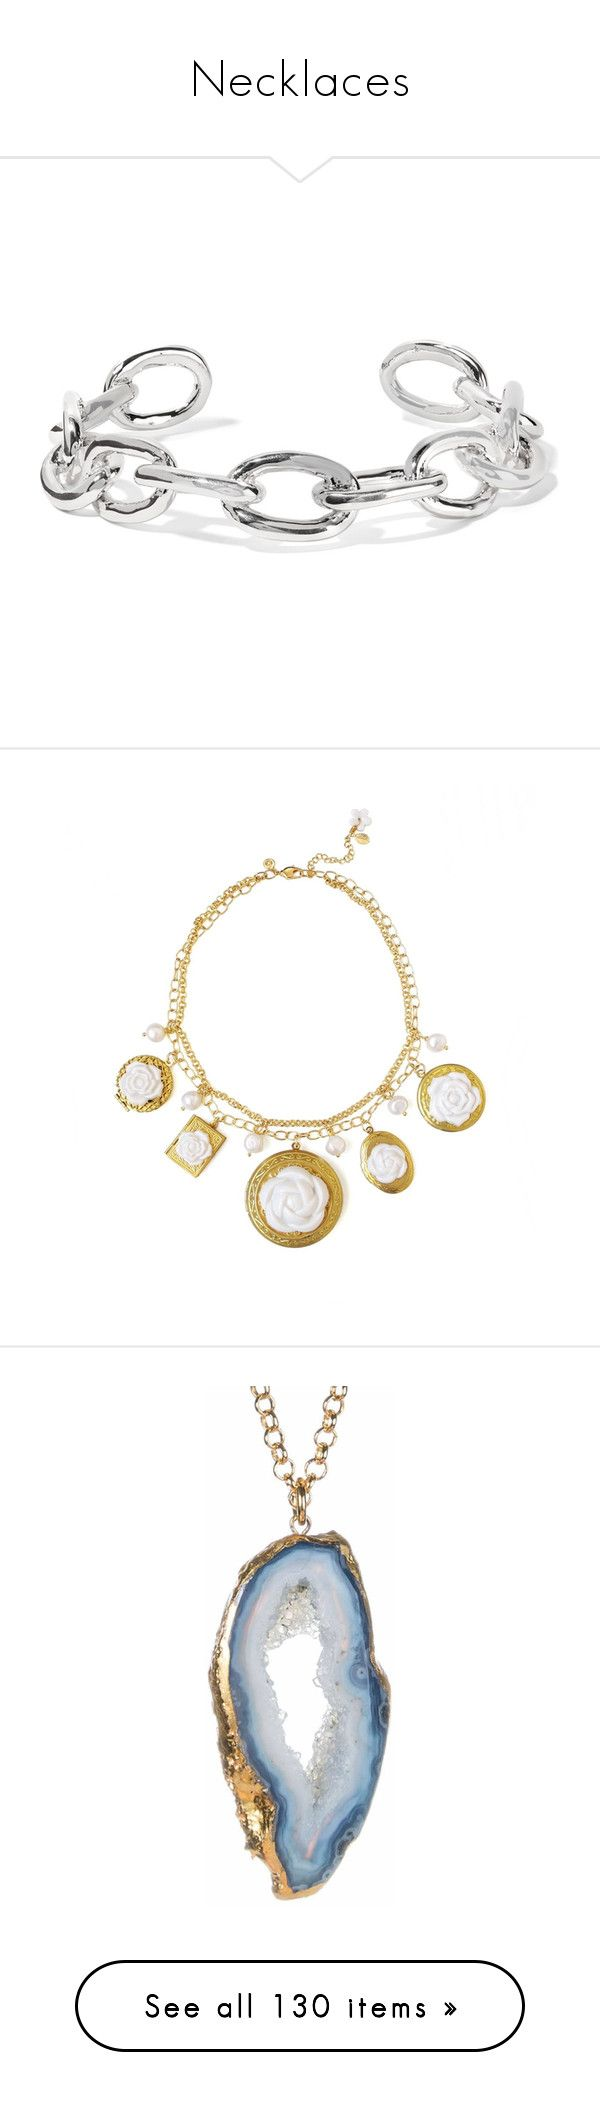 """Necklaces"" by lustydame ❤ liked on Polyvore featuring jewelry, necklaces, silver, silver plated jewelry, choker jewellery, jennifer fisher, chain link choker necklace, silver plating jewelry, yellow statement necklace and long statement necklace"